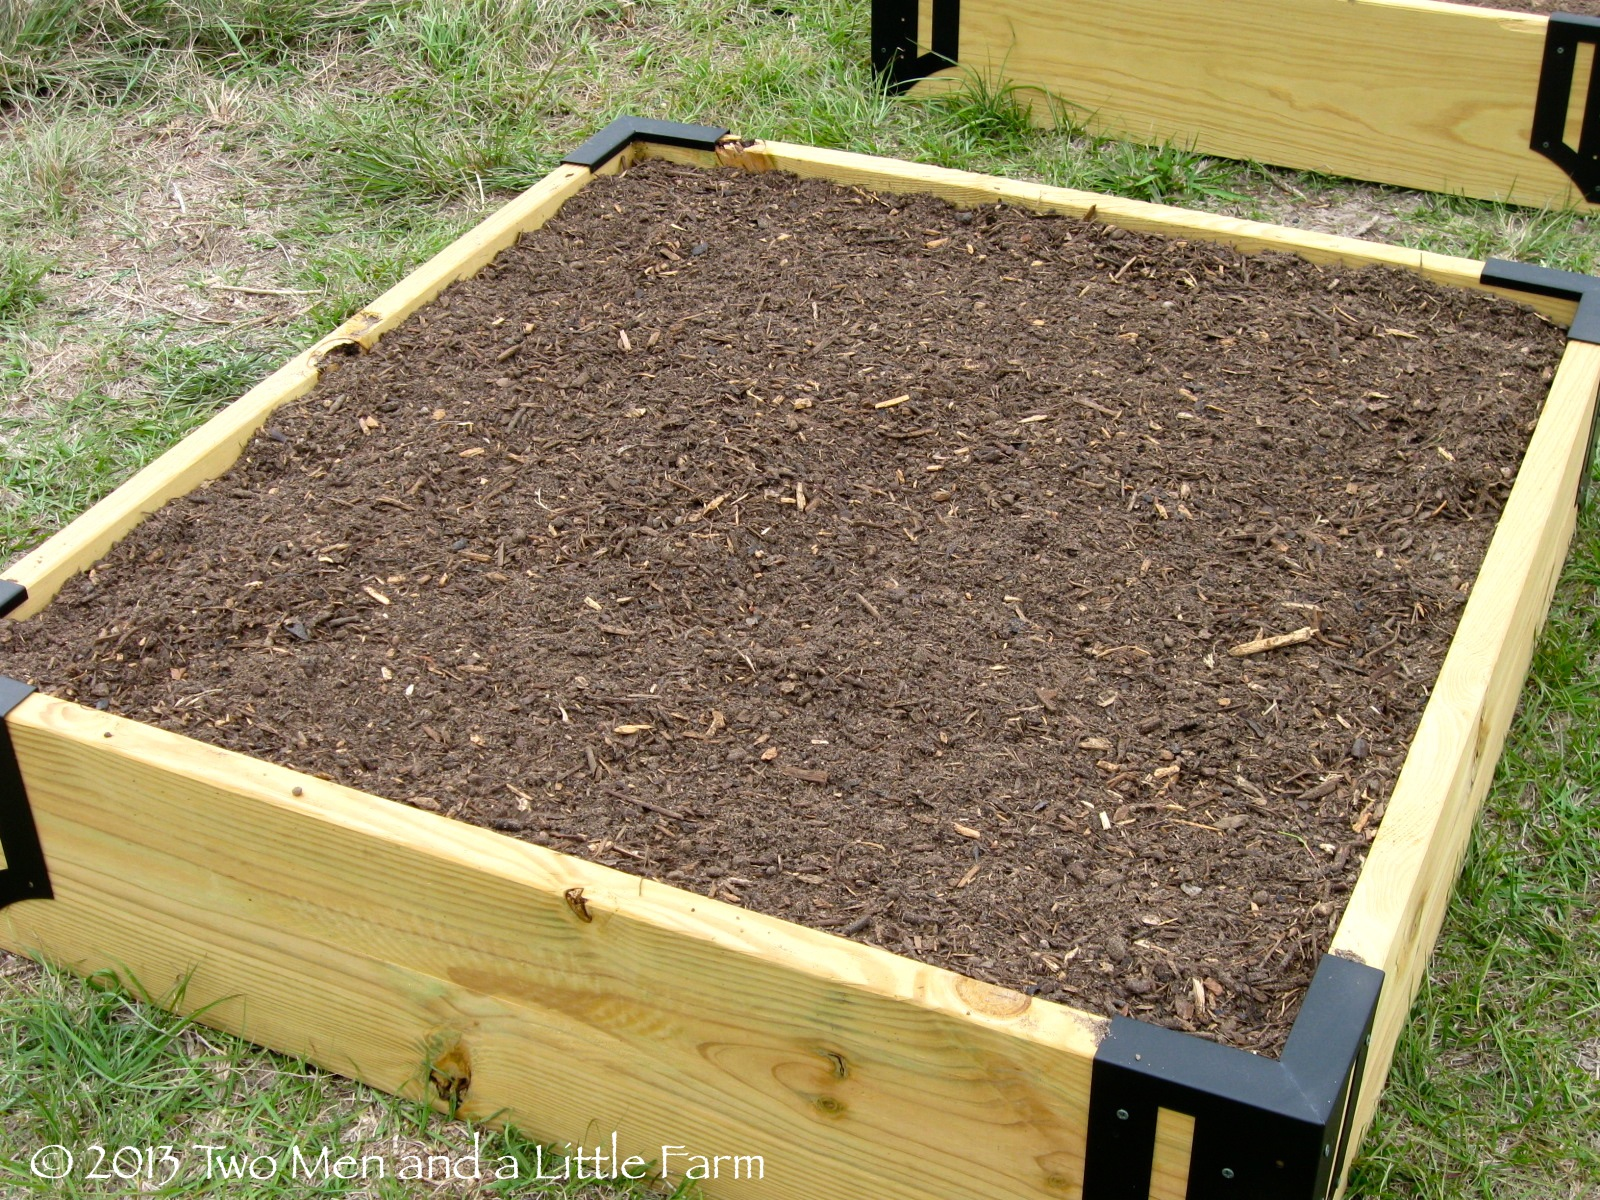 How To Mix Soil For Raised Garden Beds